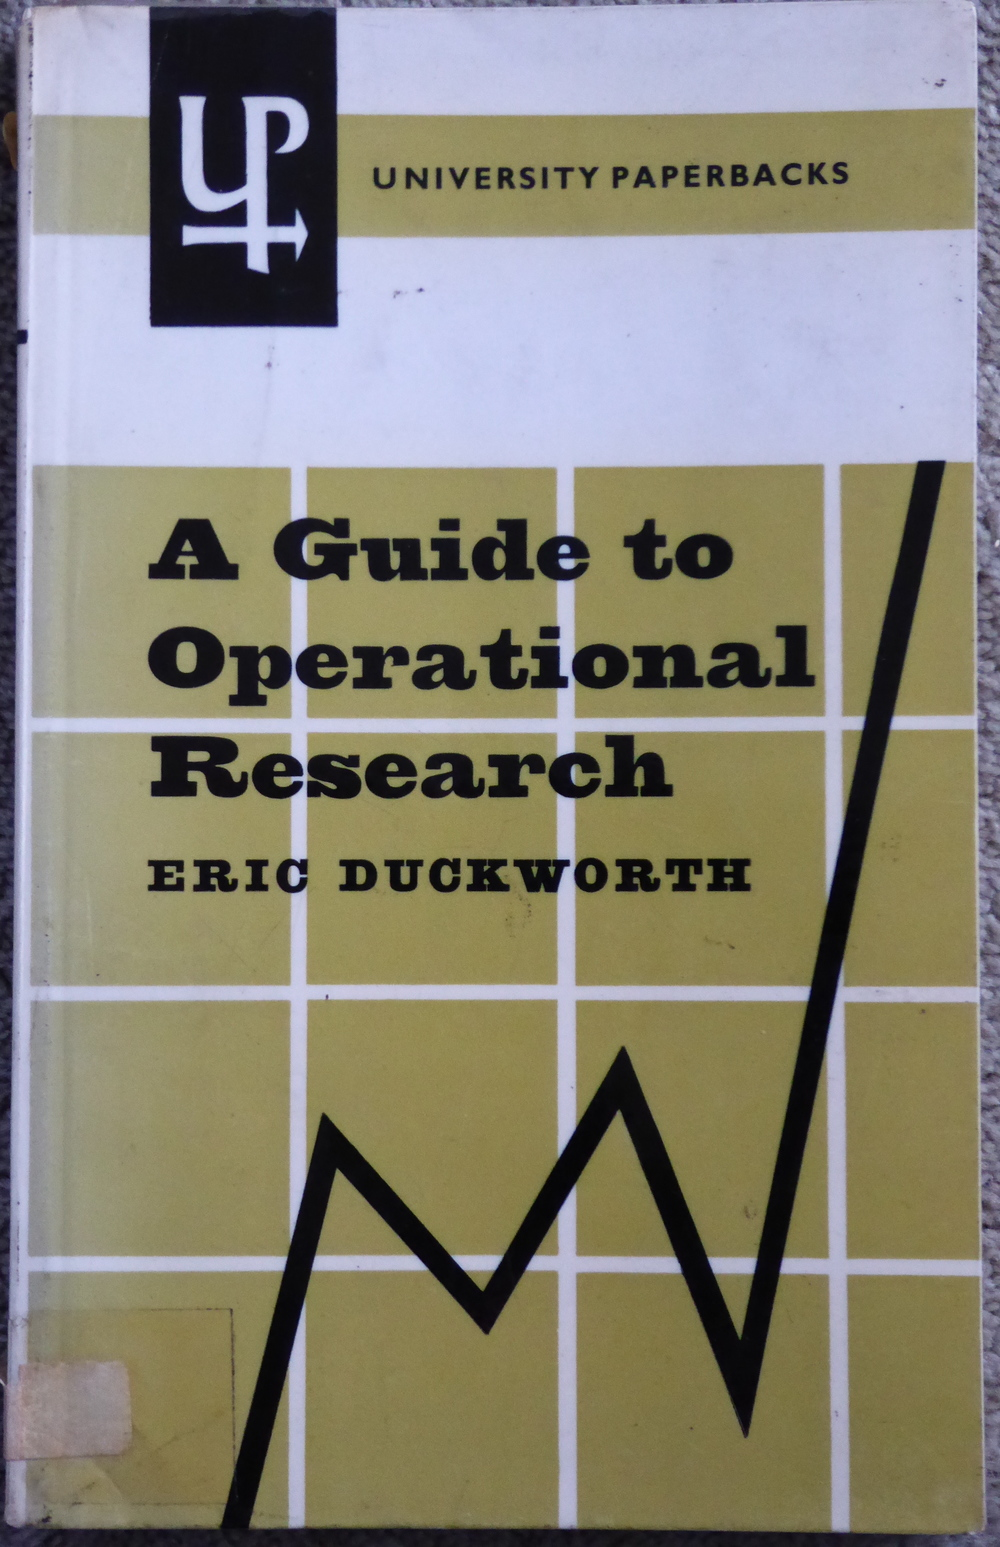 DDR_P1010054_Duckworth_GuideToOperationResearch.JPG